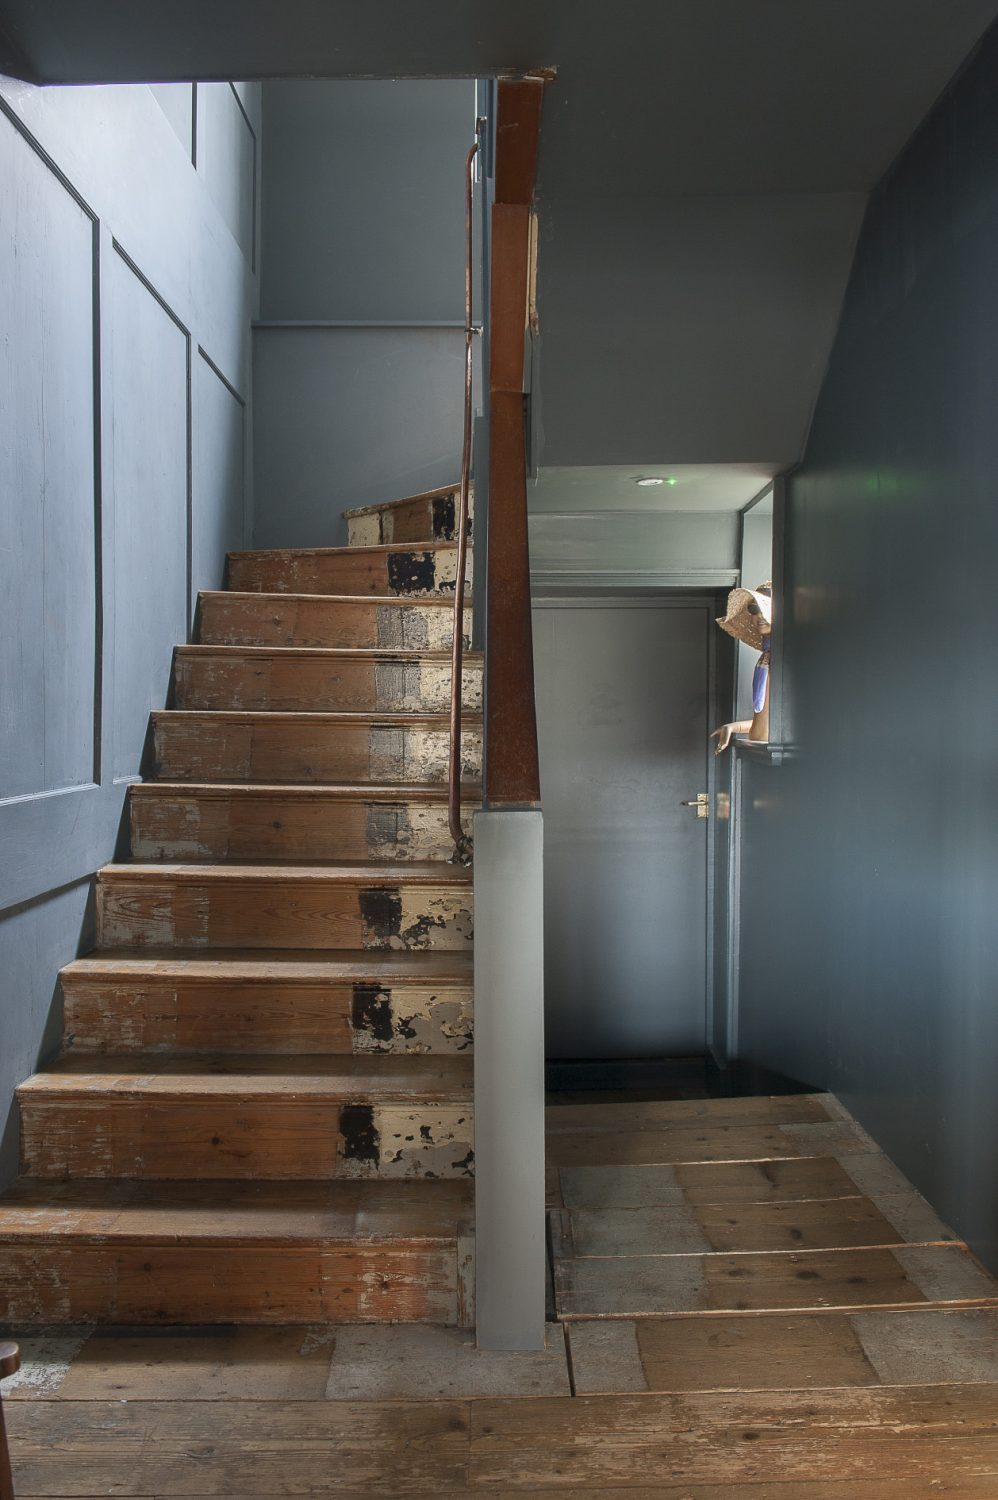 The carpets have been removed throughout, to leave characterful, marked floorboards which fit perfectly with the original panelling on the stairwell